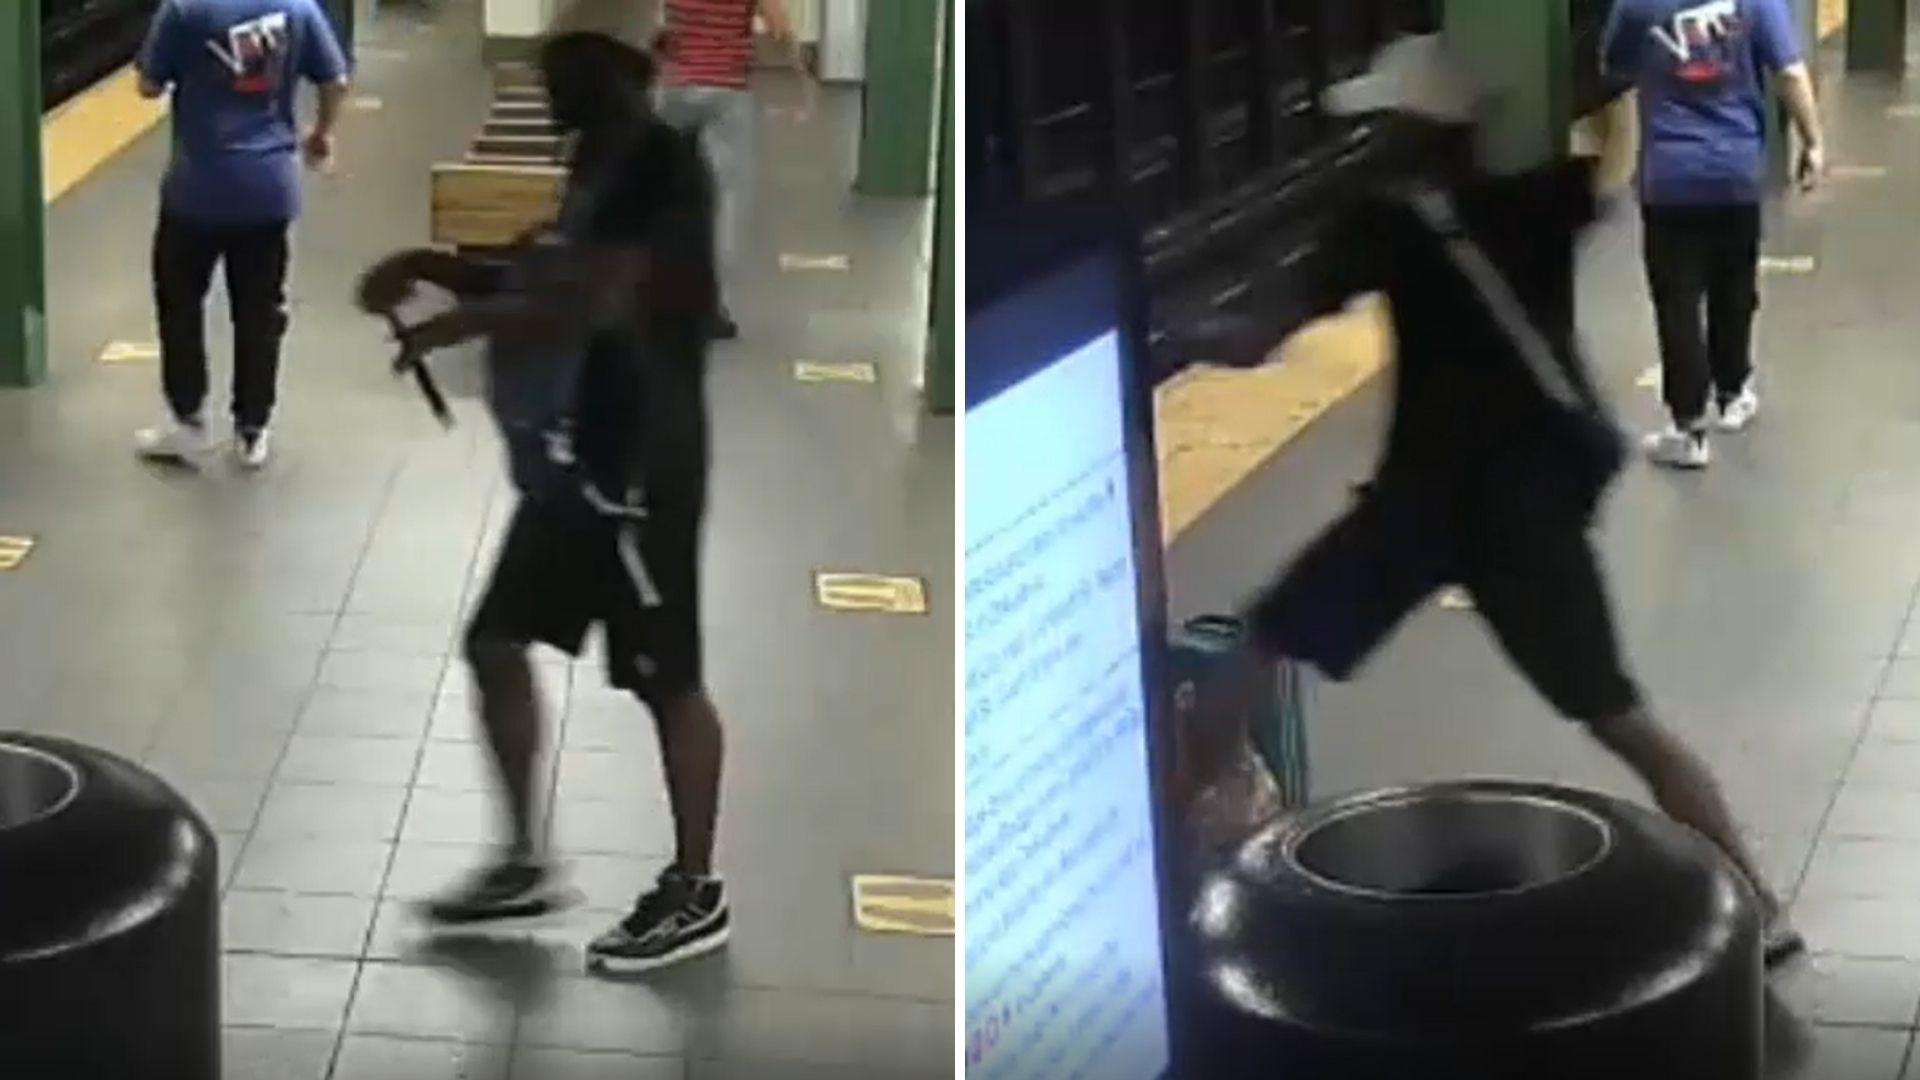 Man attacks another man with hammer in Union Square subway station